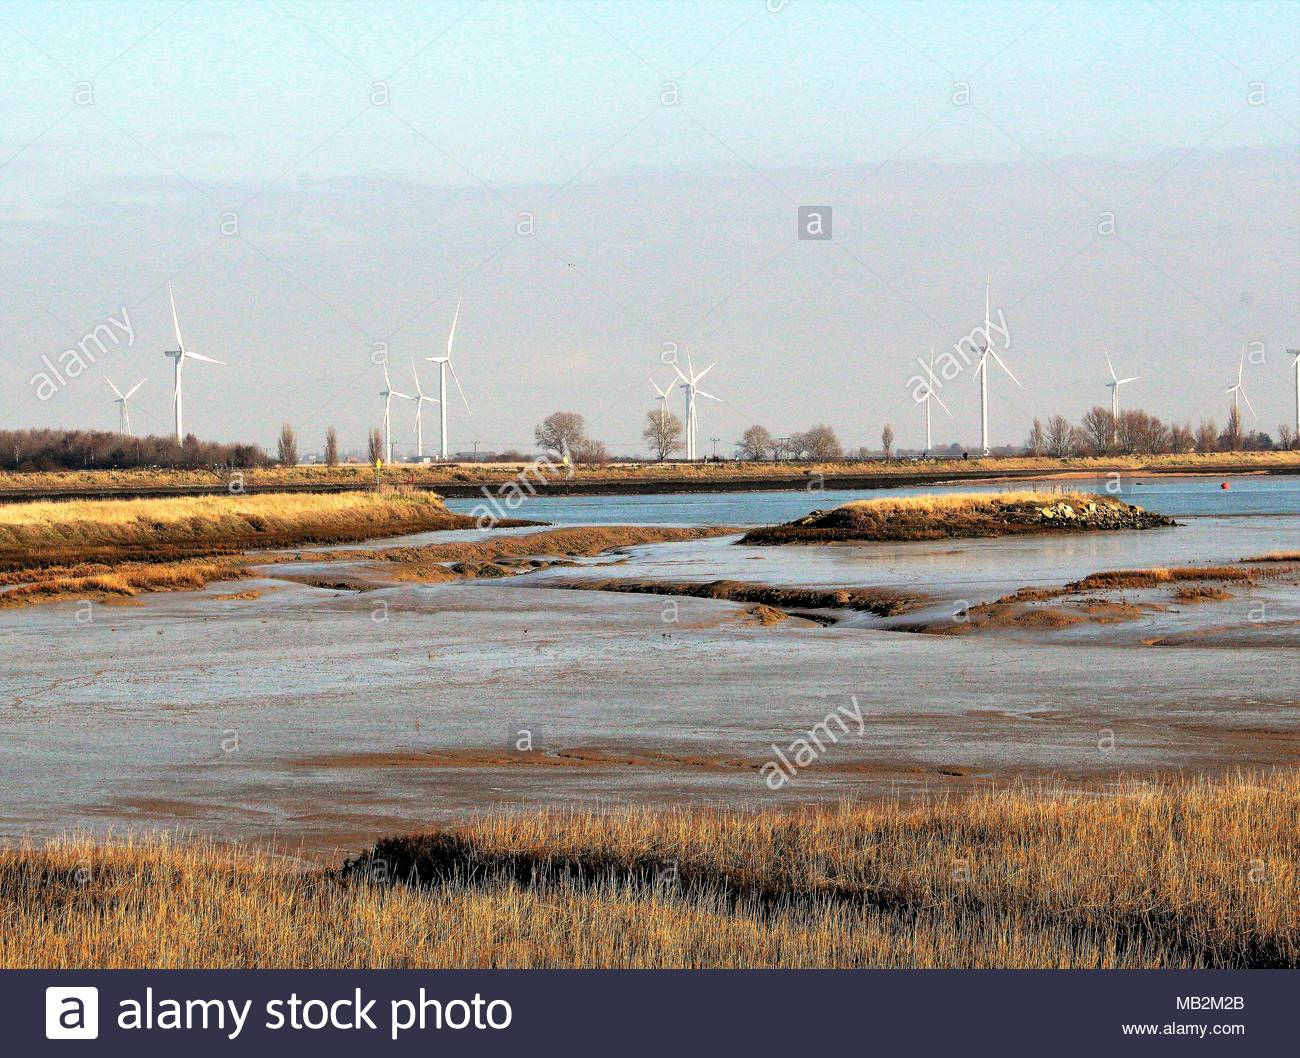 Renewable Energy. Wind turbines turn at the site of the wild coast project and site of crossrail link at Wallasea Island, Britain. - Stock Image